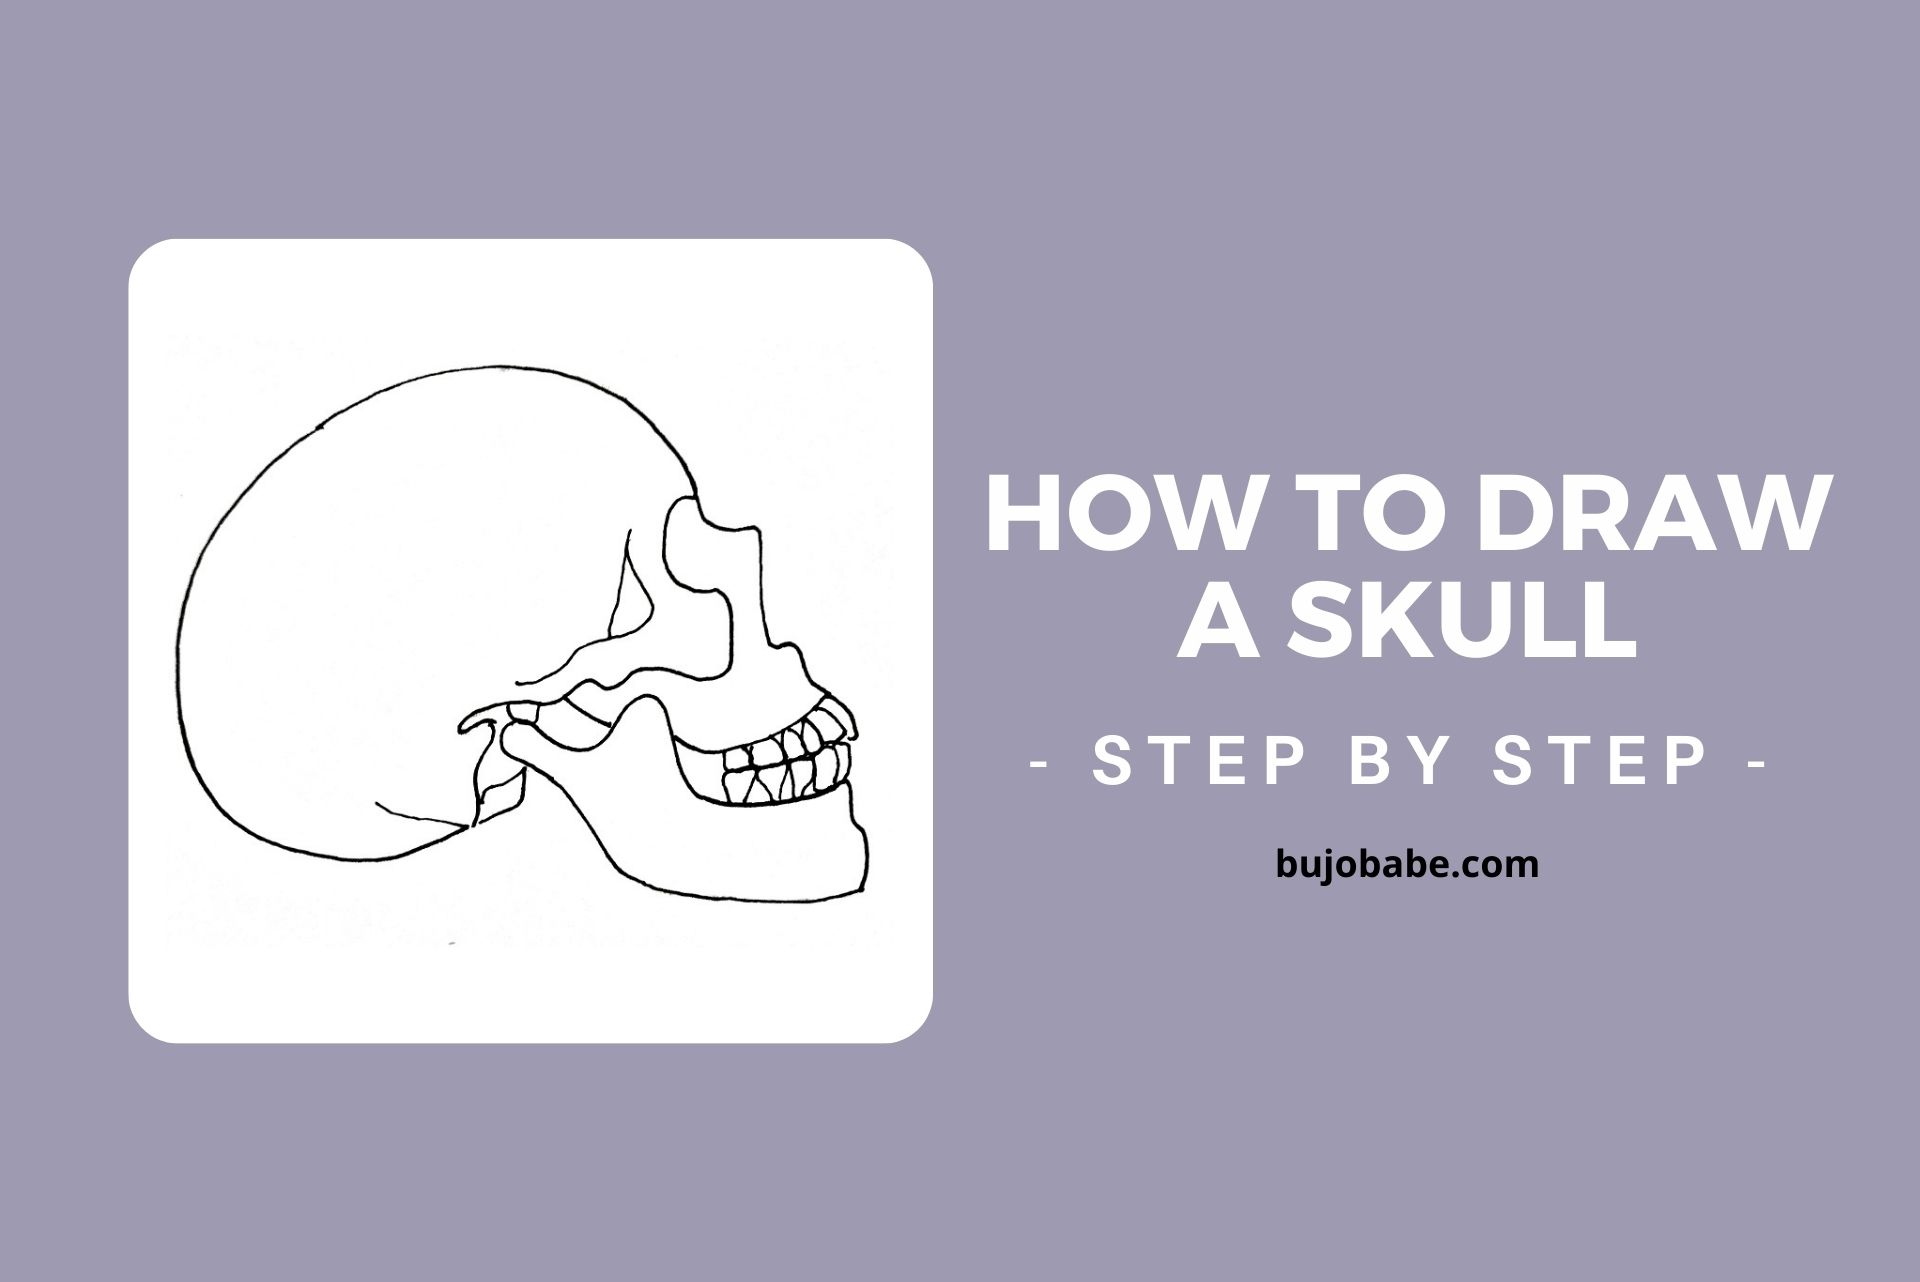 how to draw a skull in side profile step by step